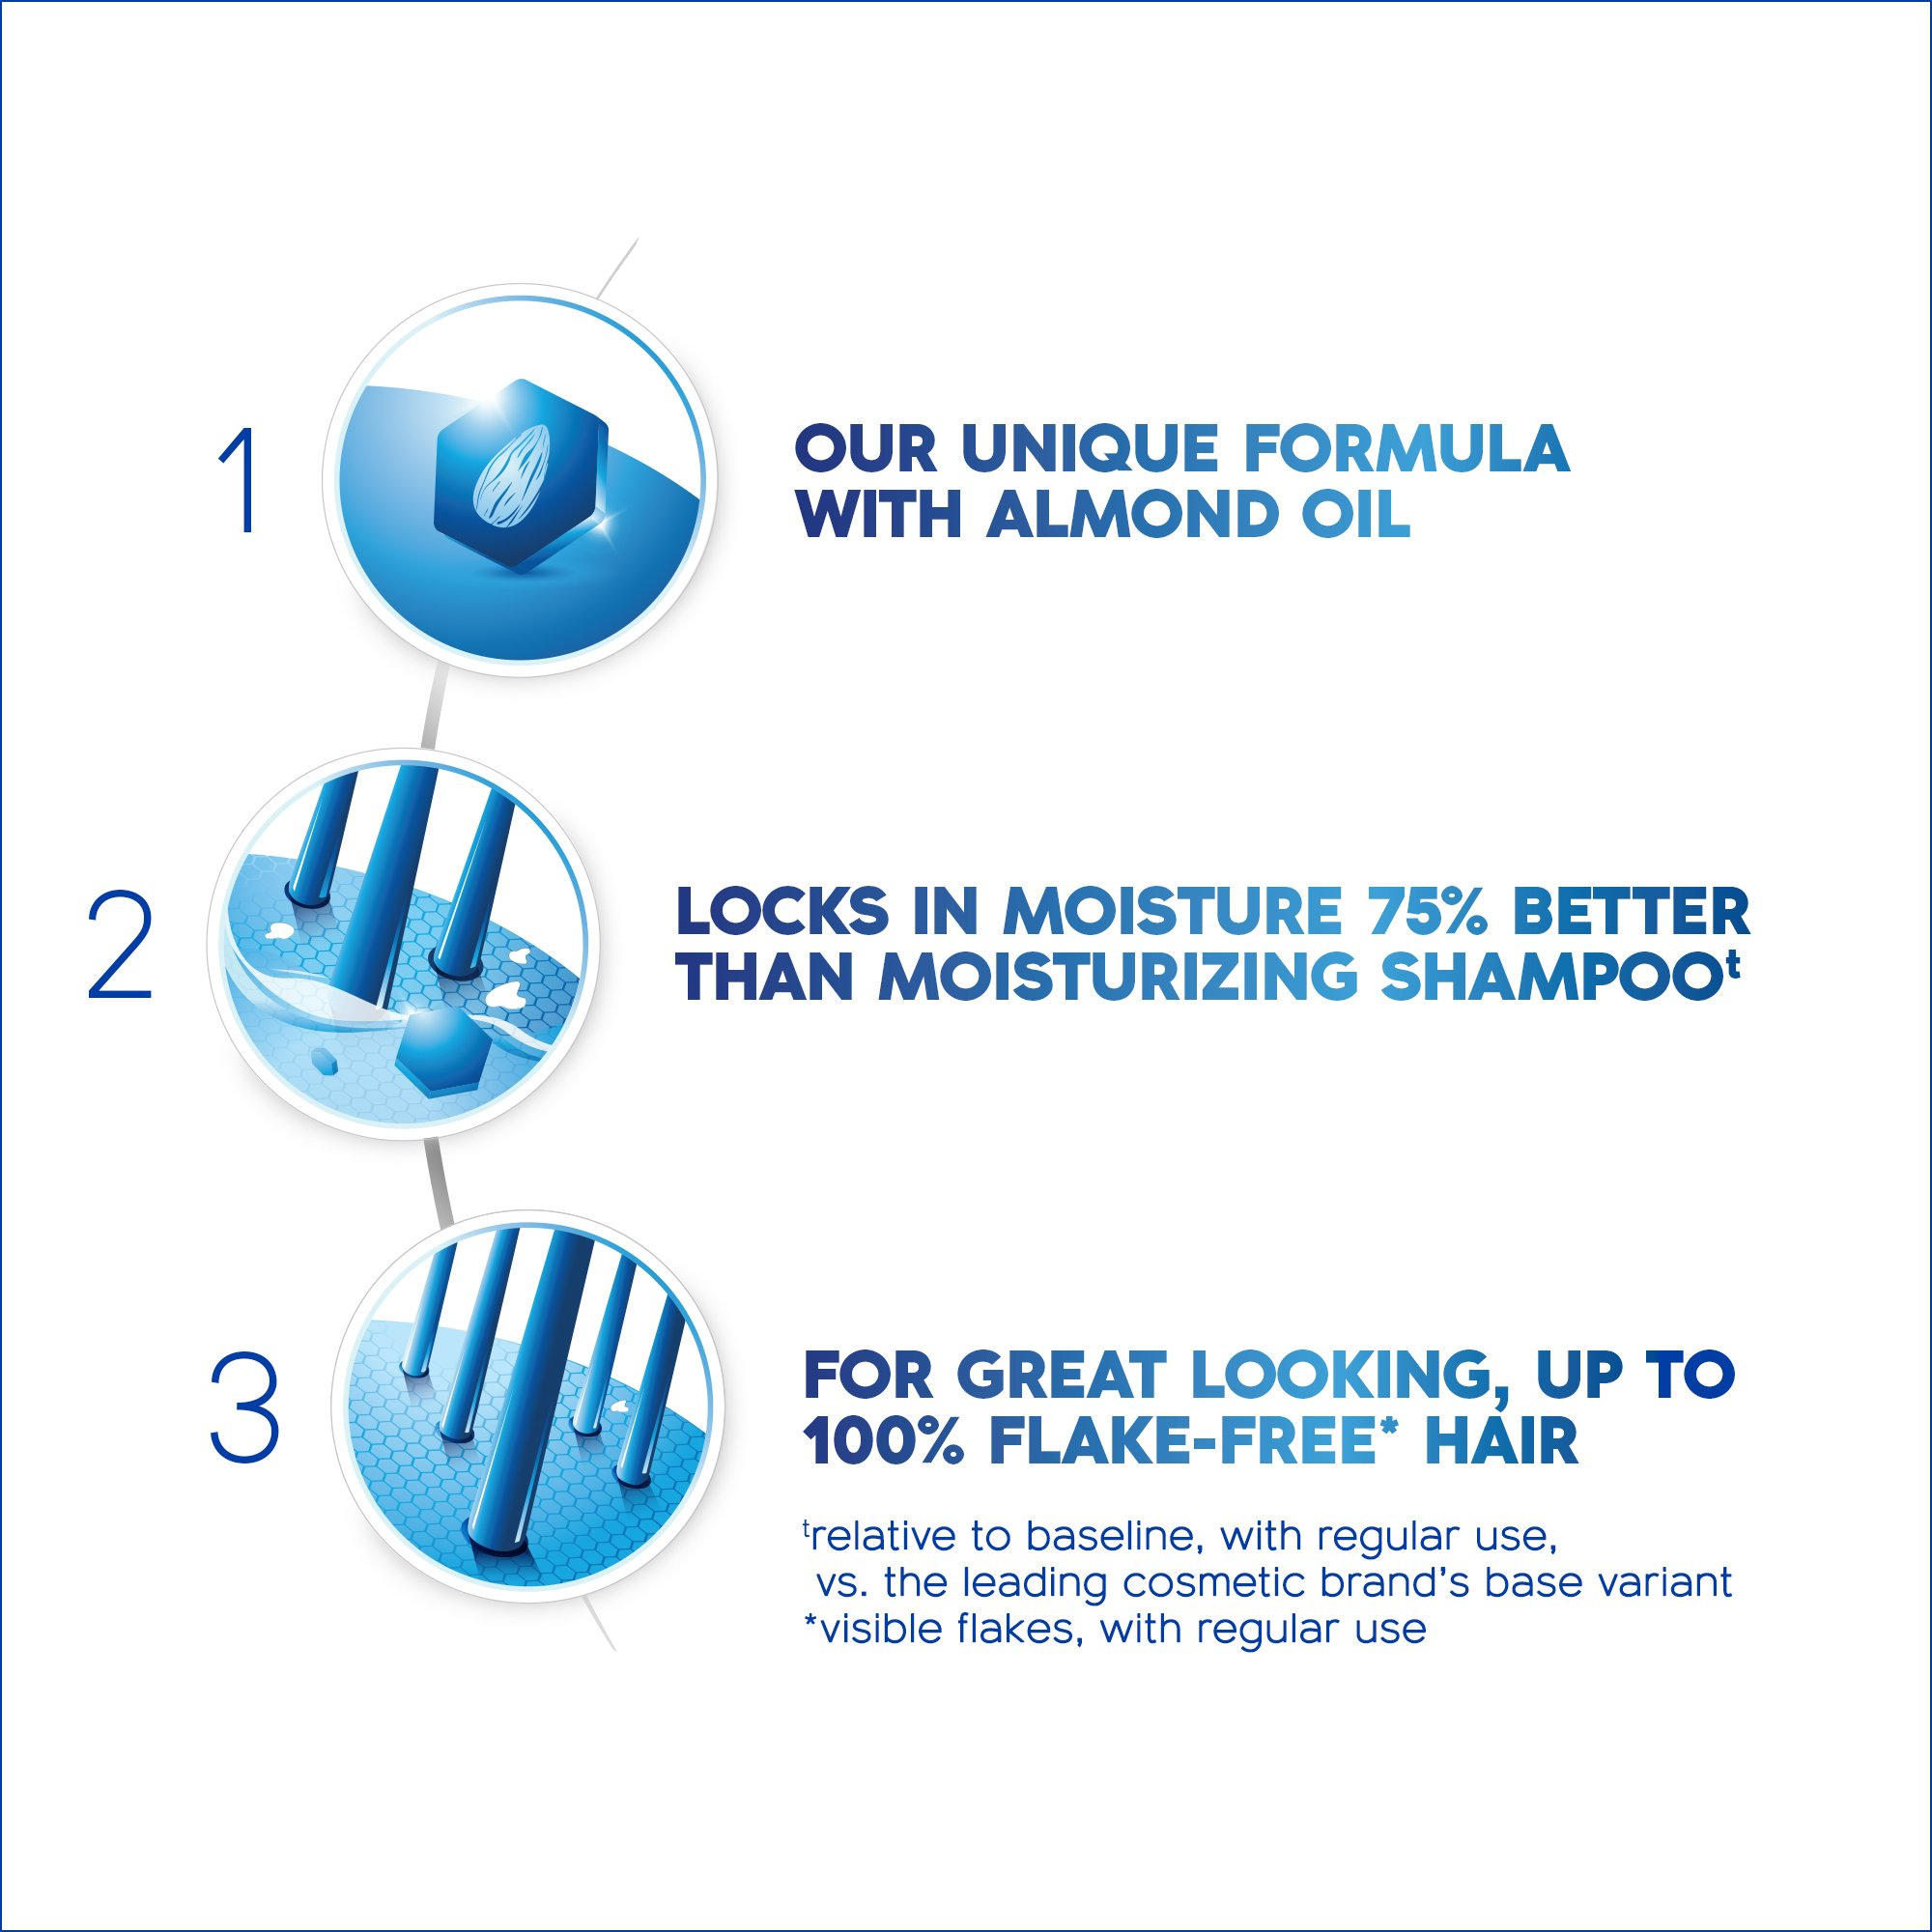 Head & Shoulders Dry Scalp Care with Almond Oil 2-in-1 Anti-Dandruff Shampo,23.7 ounce (Pack of 2) by Head & Shoulders (Image #3)